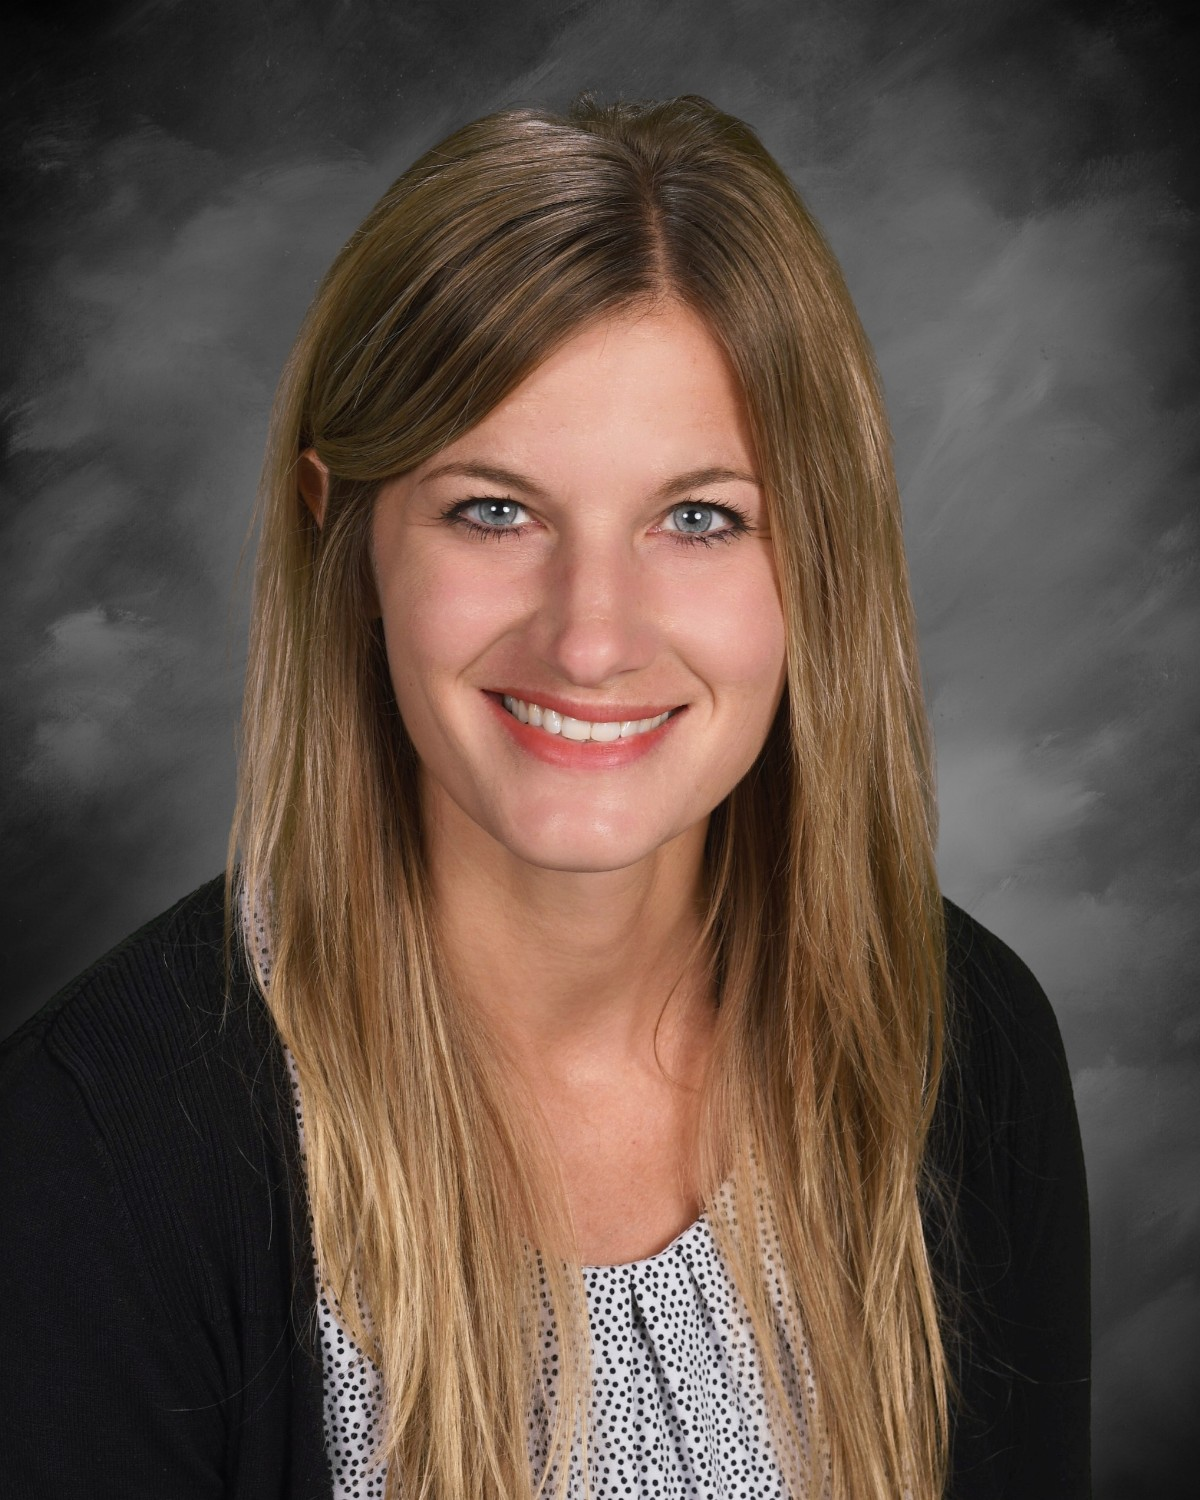 Tiffany Nagel, Assistant Principal